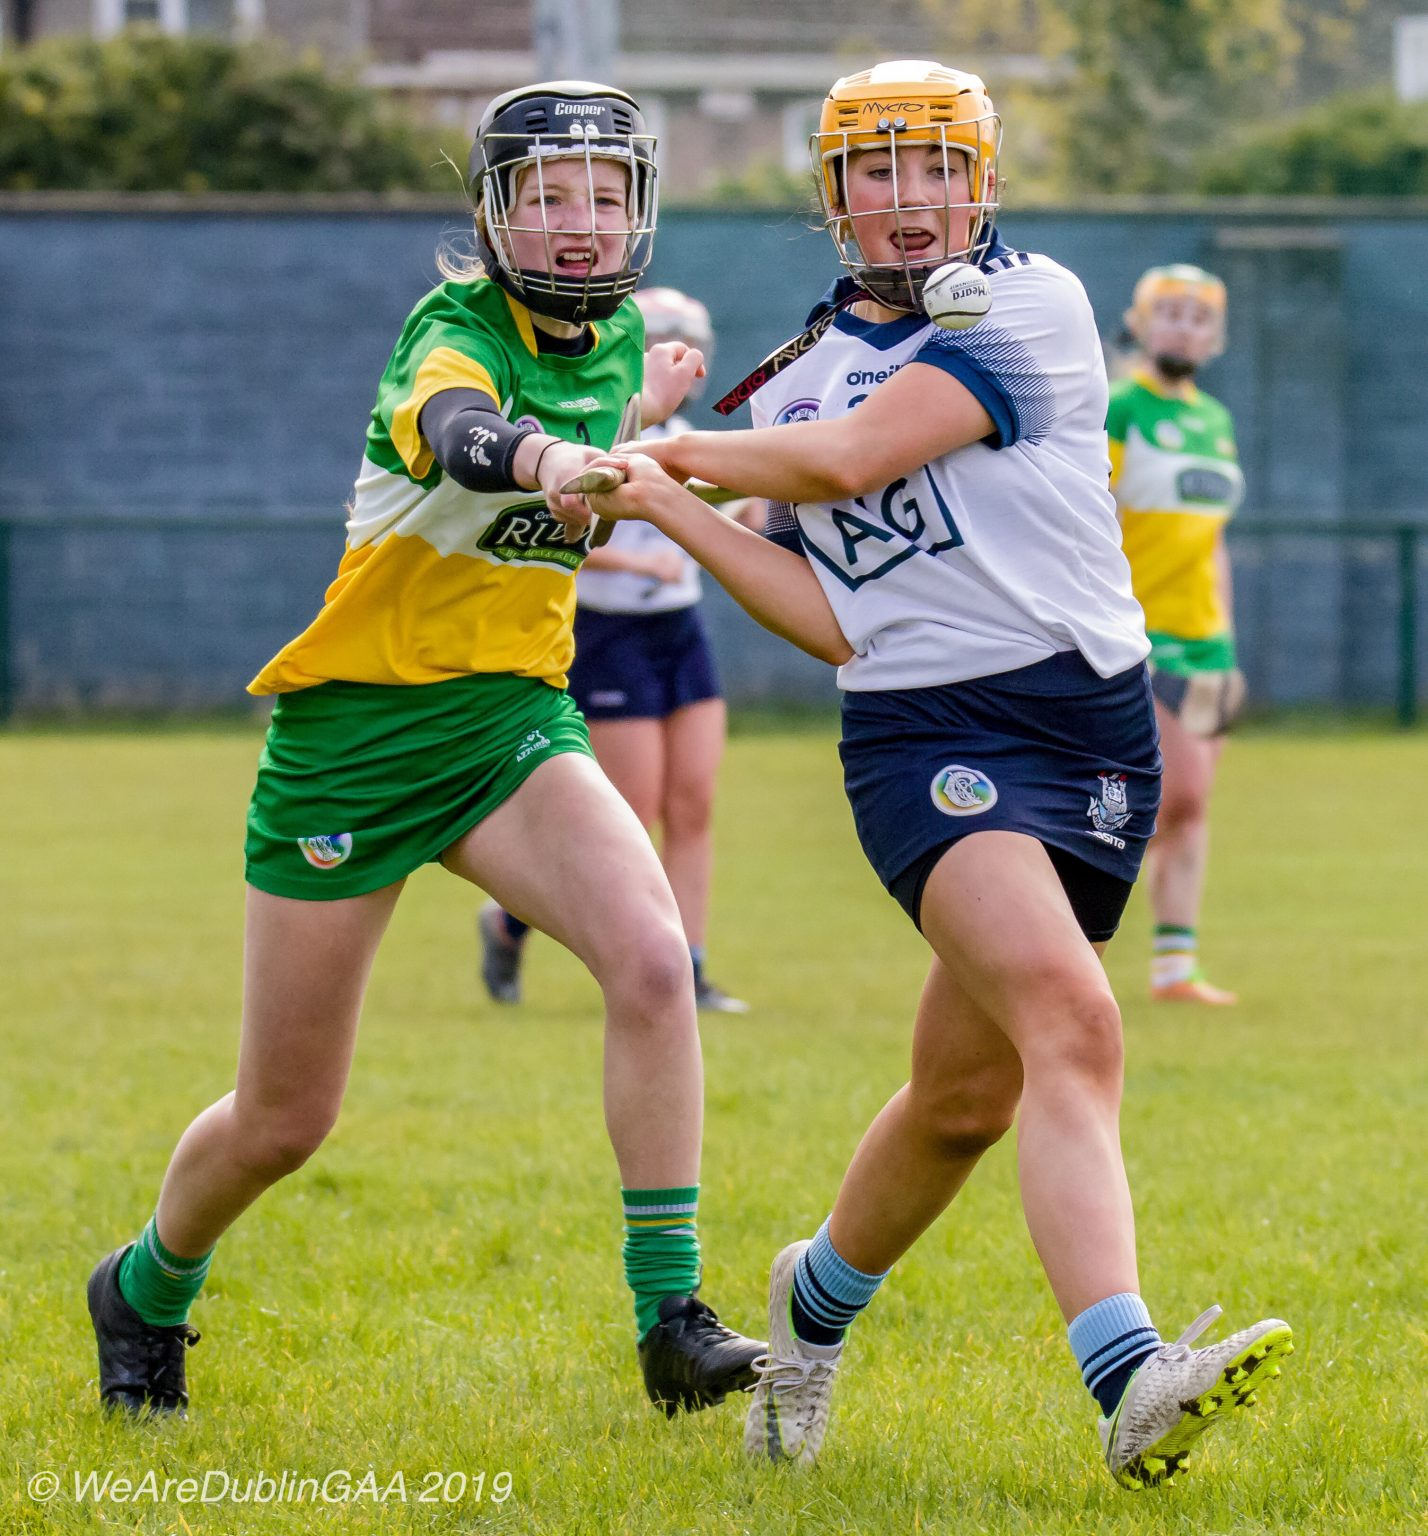 Dublin U16 Camogie Player In a White jersey with navy trim, navy skort and yellow helmet about to strike the ball as an Offaly player in a green,white and yellow jersey, green skort and black helmet tries to hook her hurl